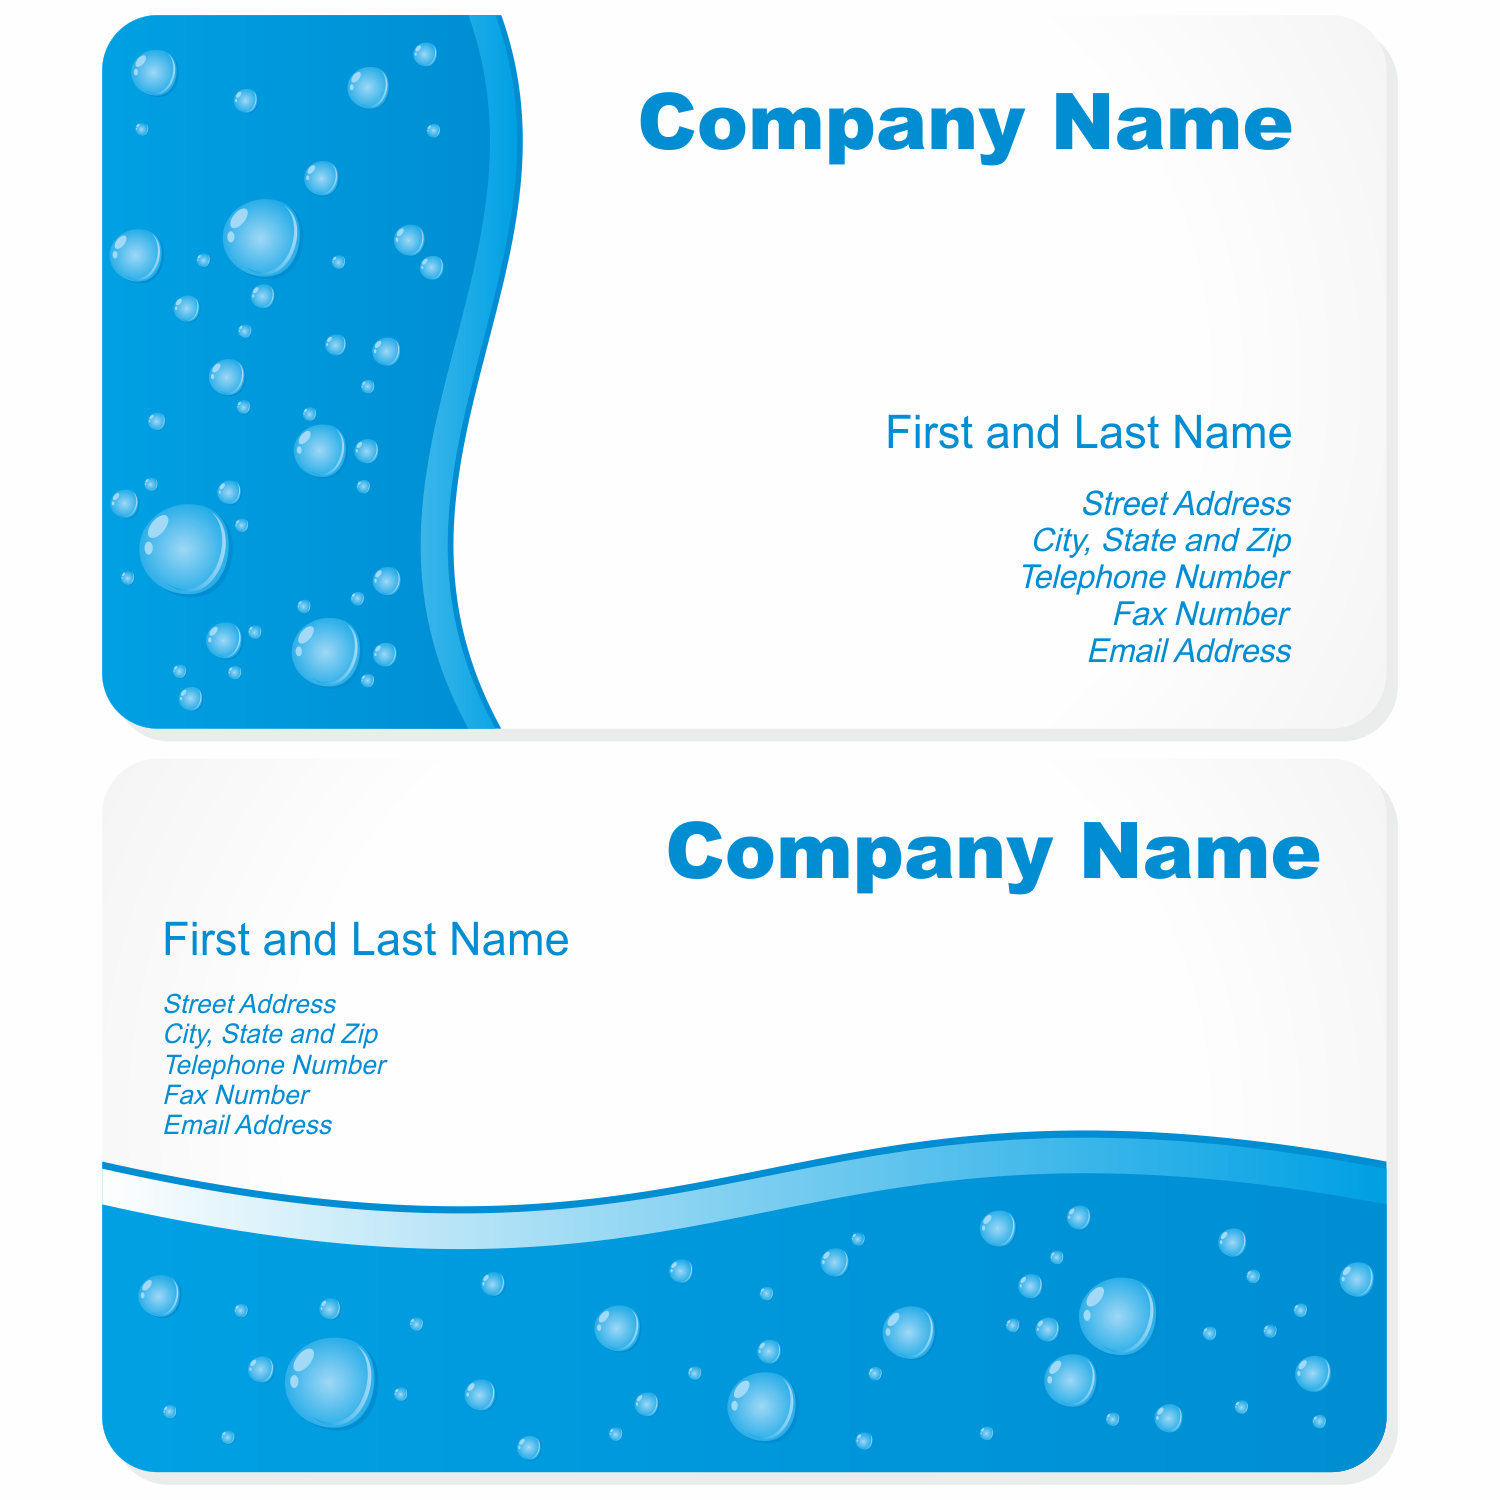 Free business card template online business card sample free business card template online wajeb